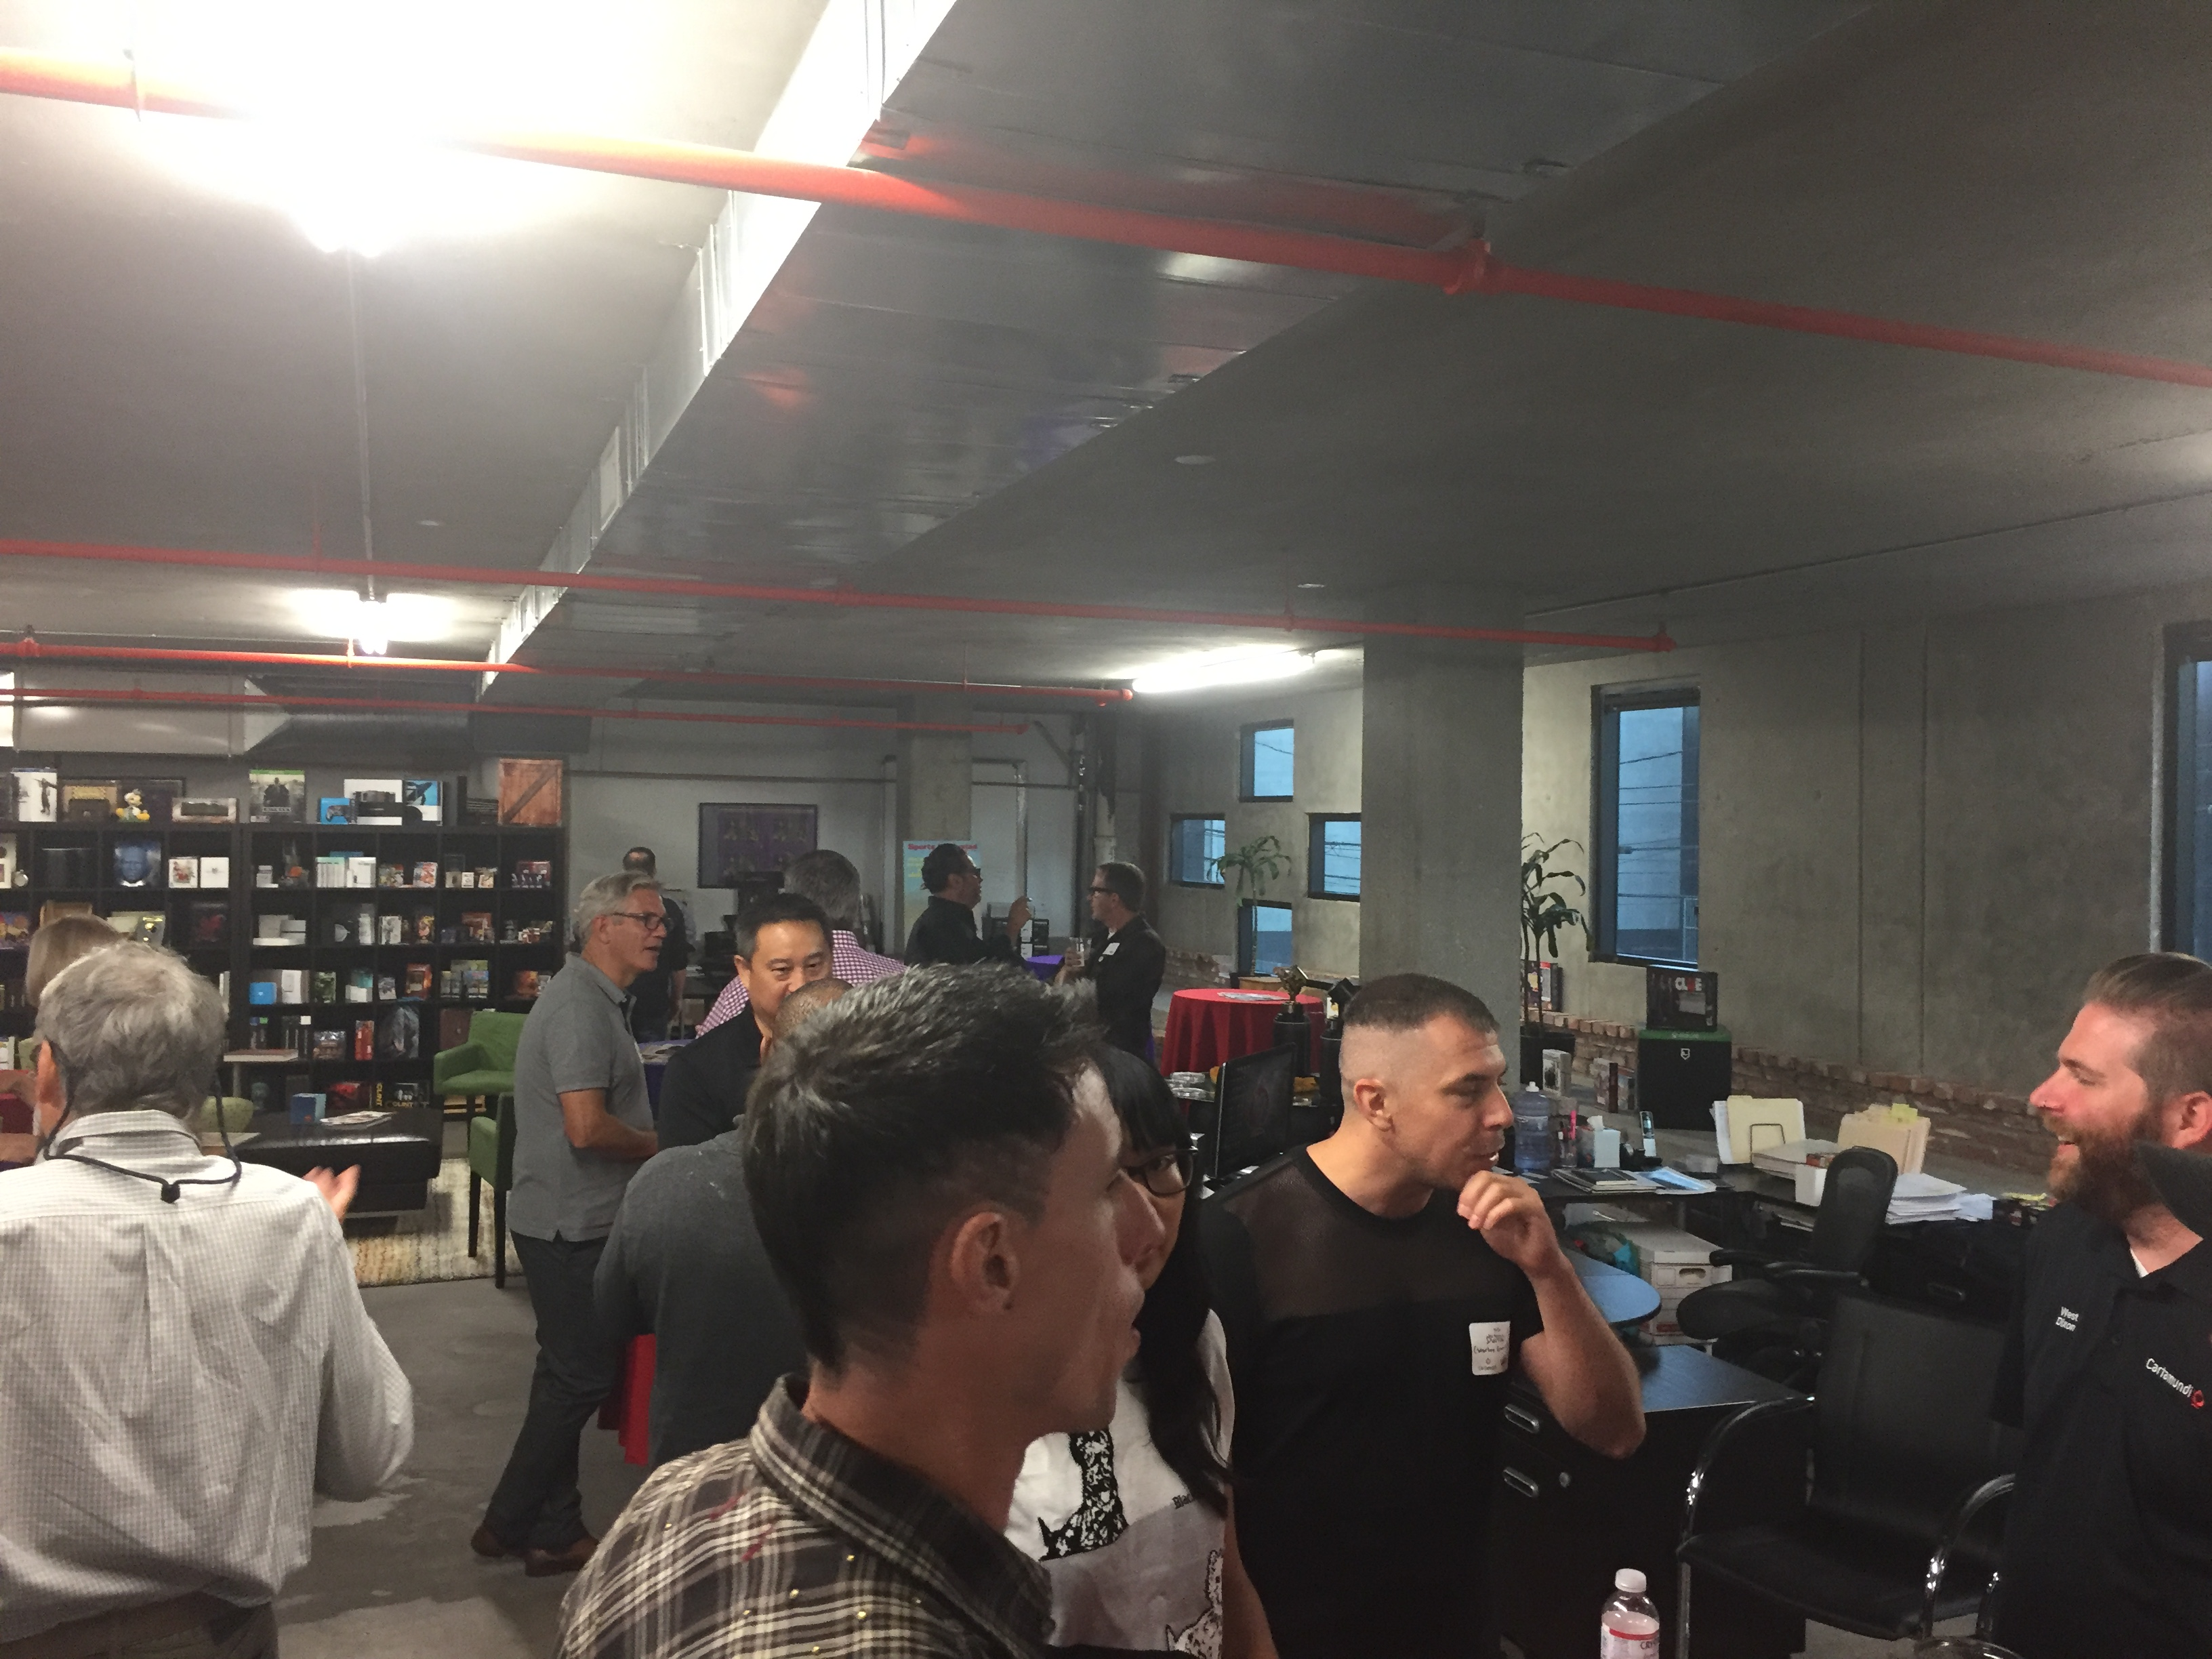 LA Sept 2019 event West and others in cr